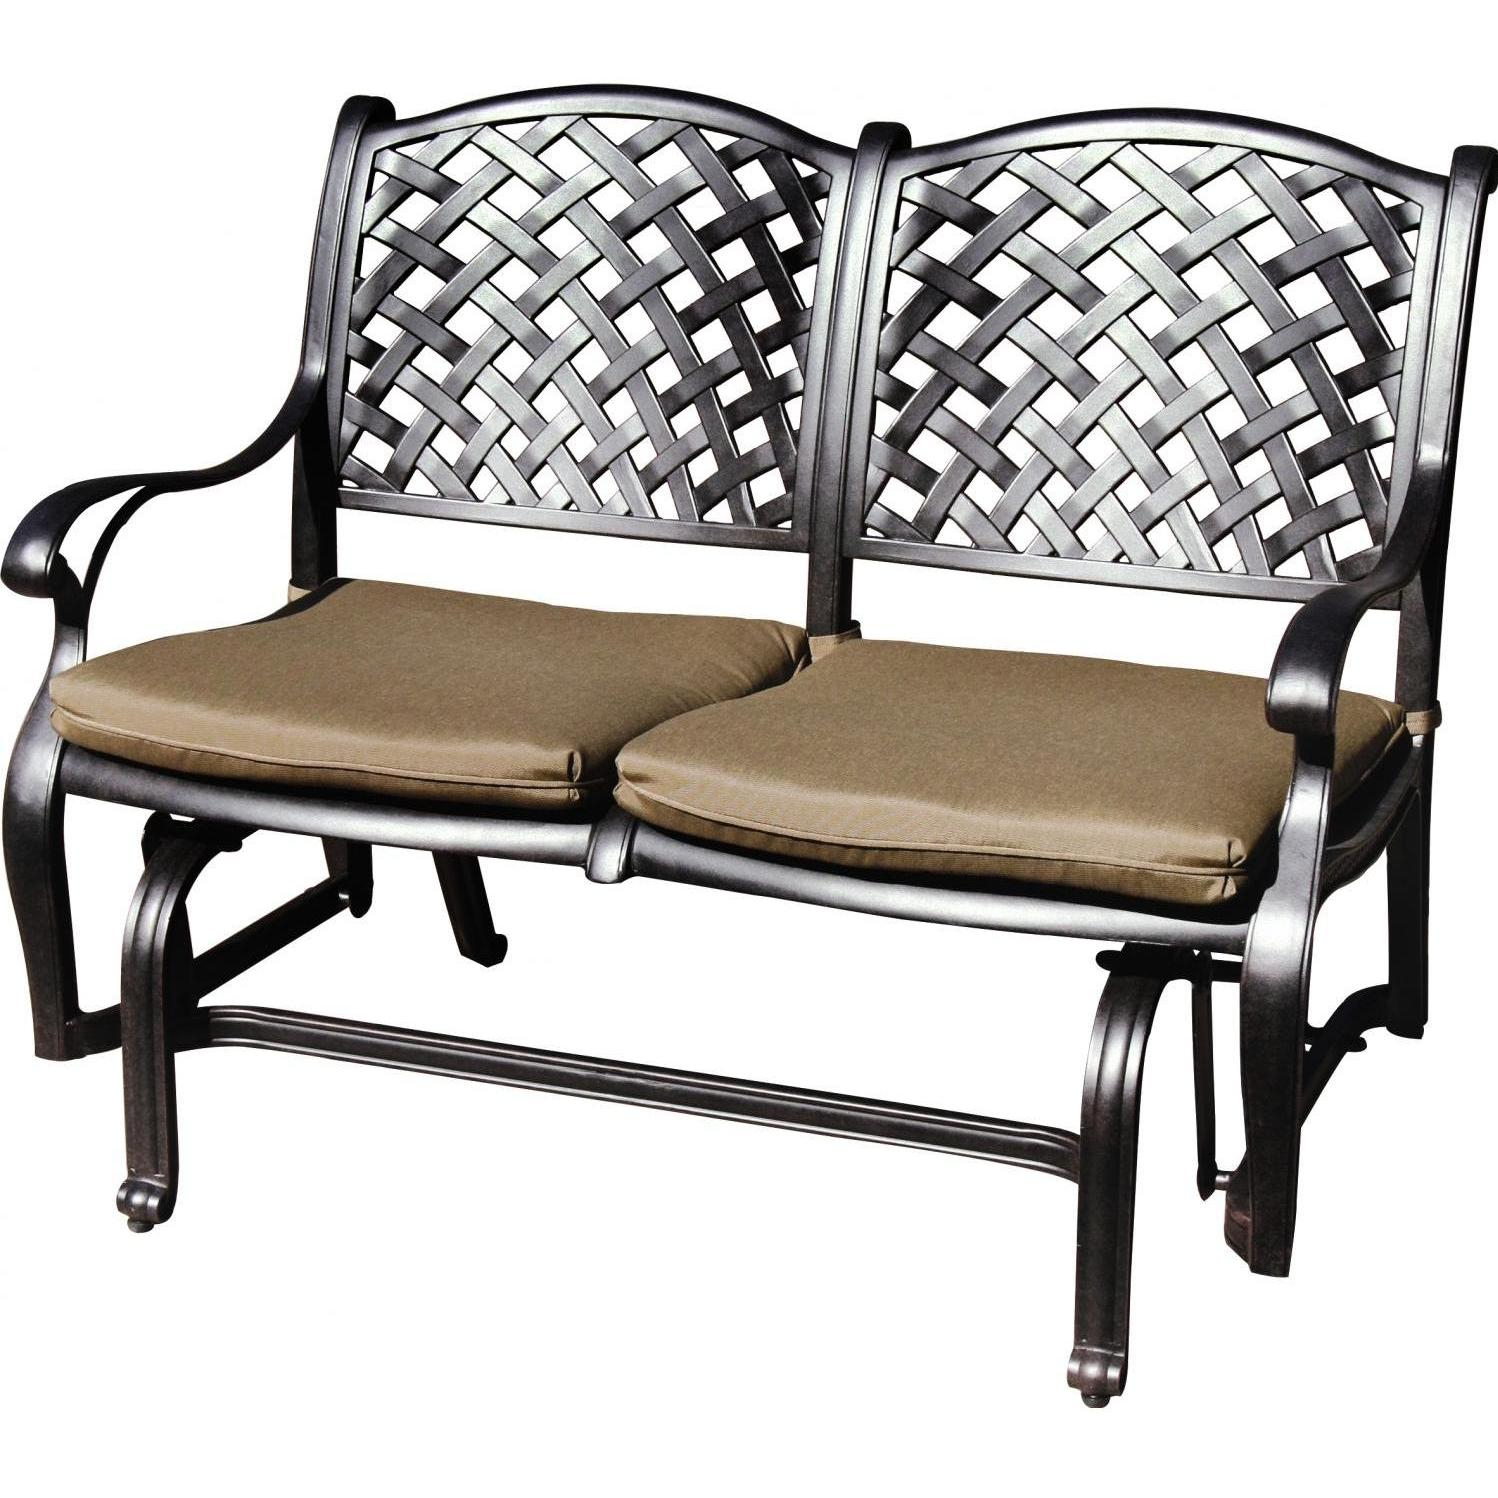 Furniture: Vintage Metal Porch Glider Design For Your Inside Outdoor Retro Metal Double Glider Benches (View 14 of 25)